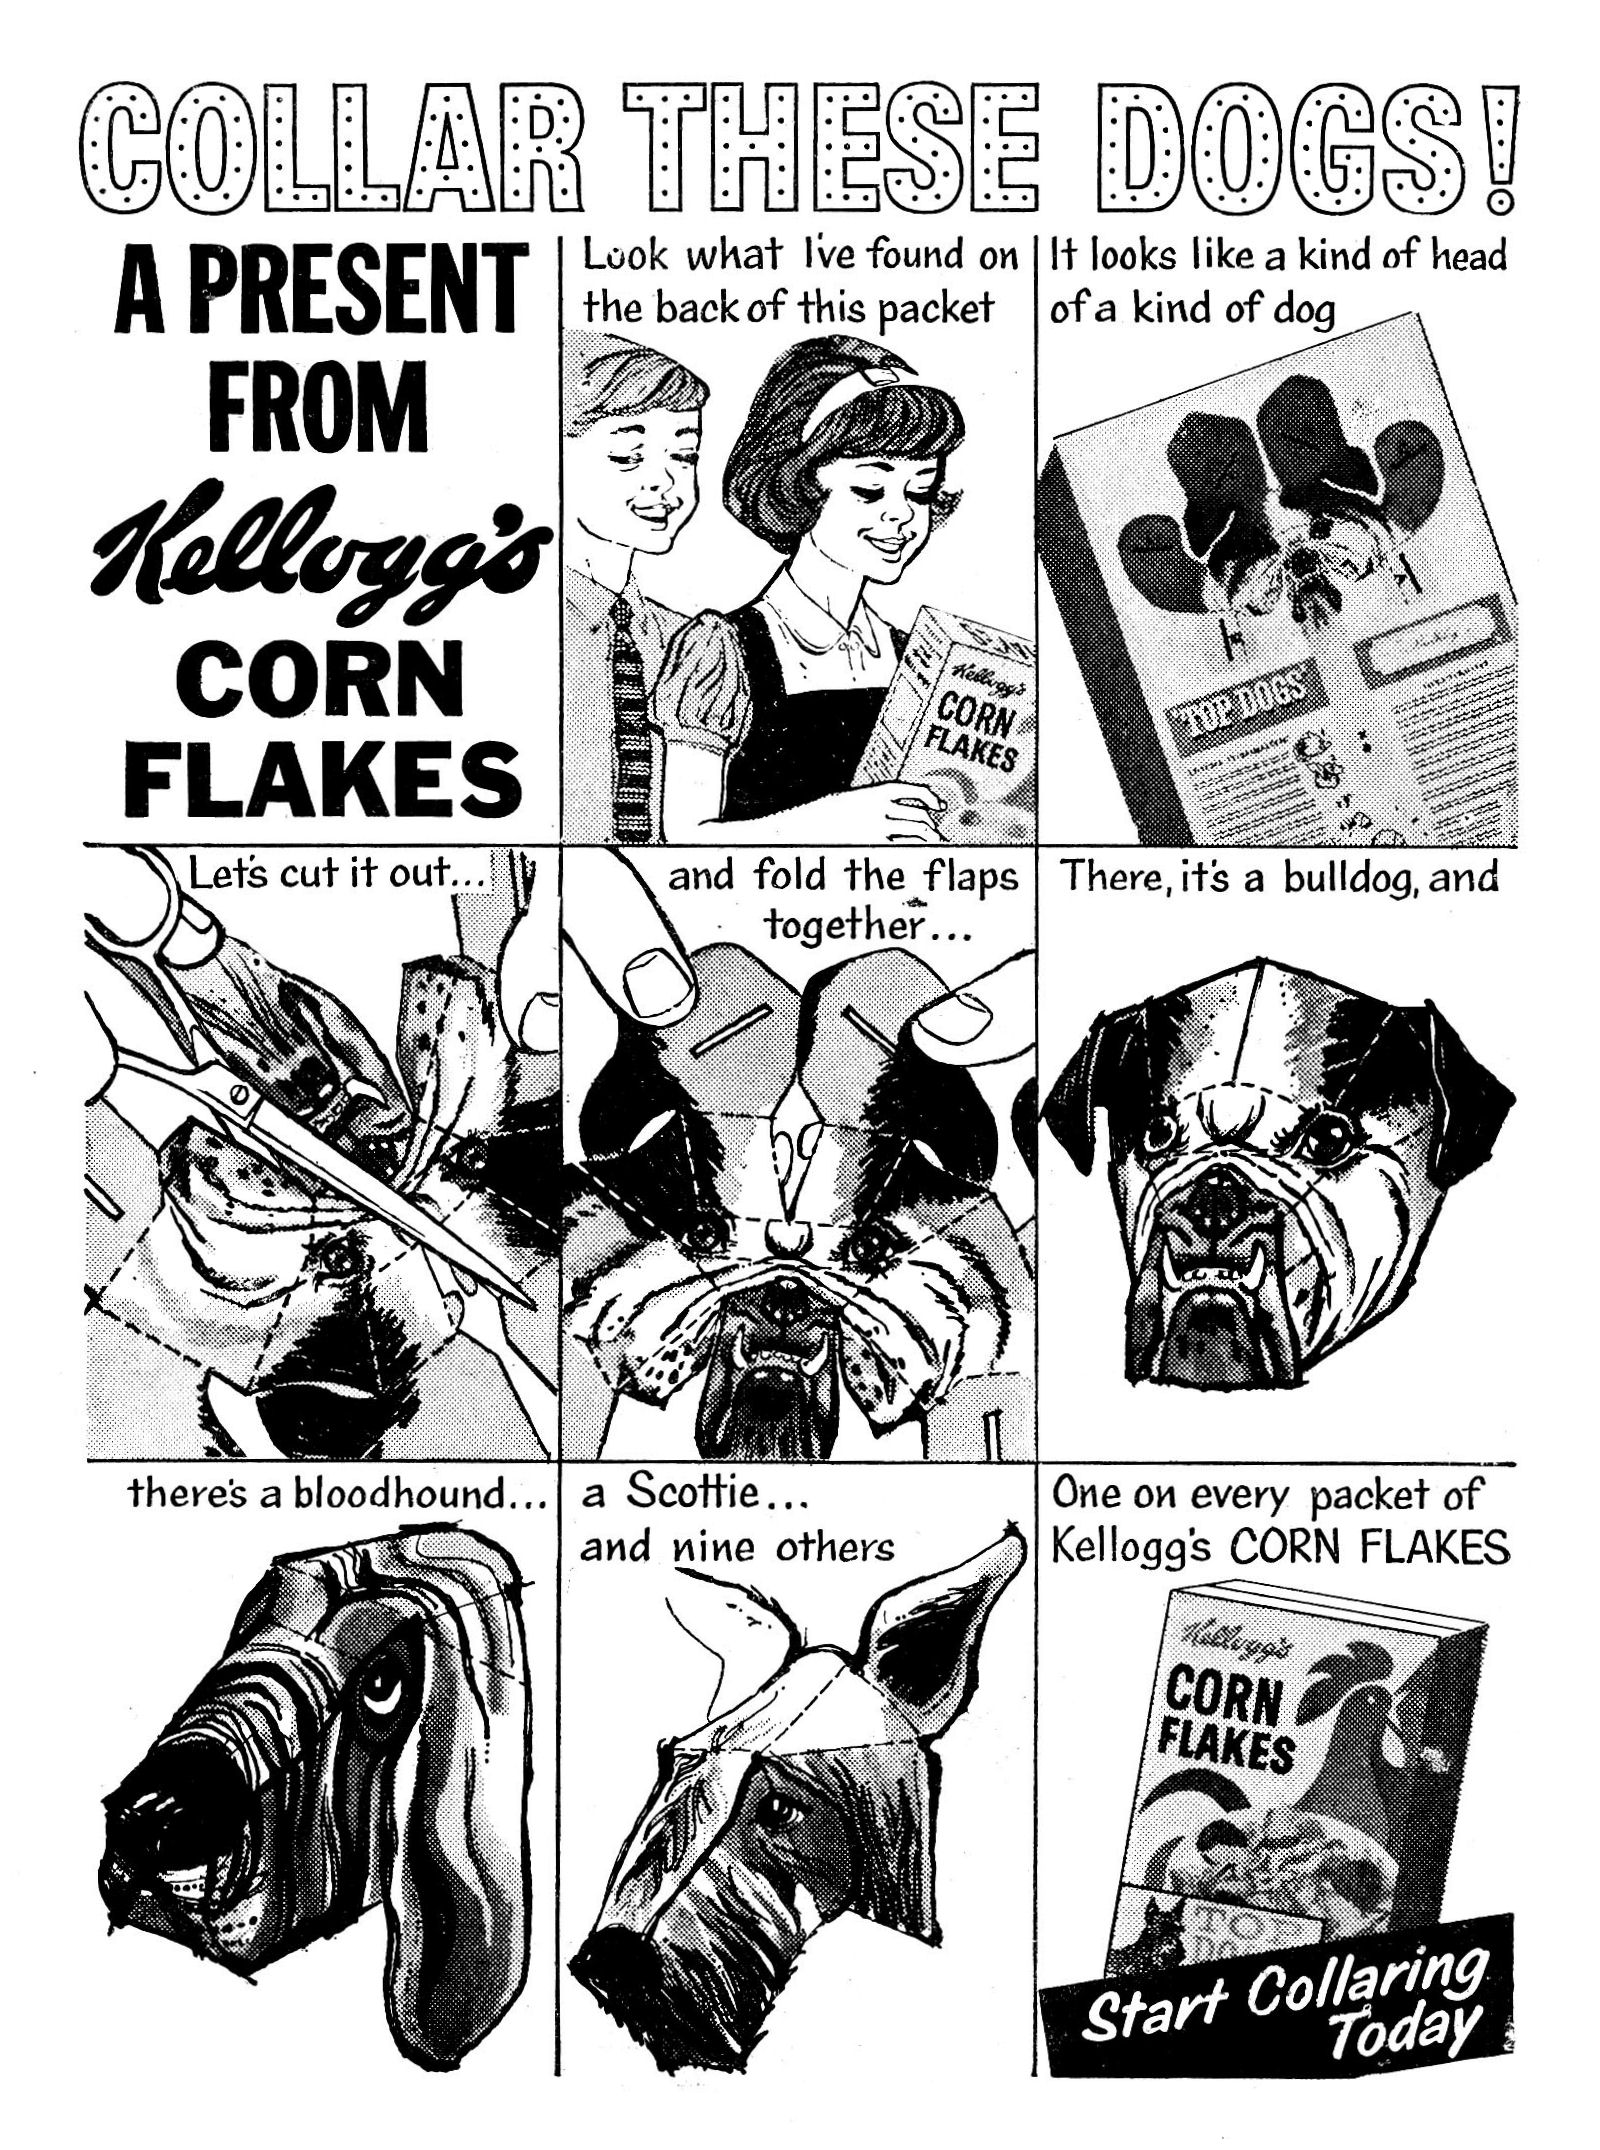 1964 Cornflakes Top Dog Heads